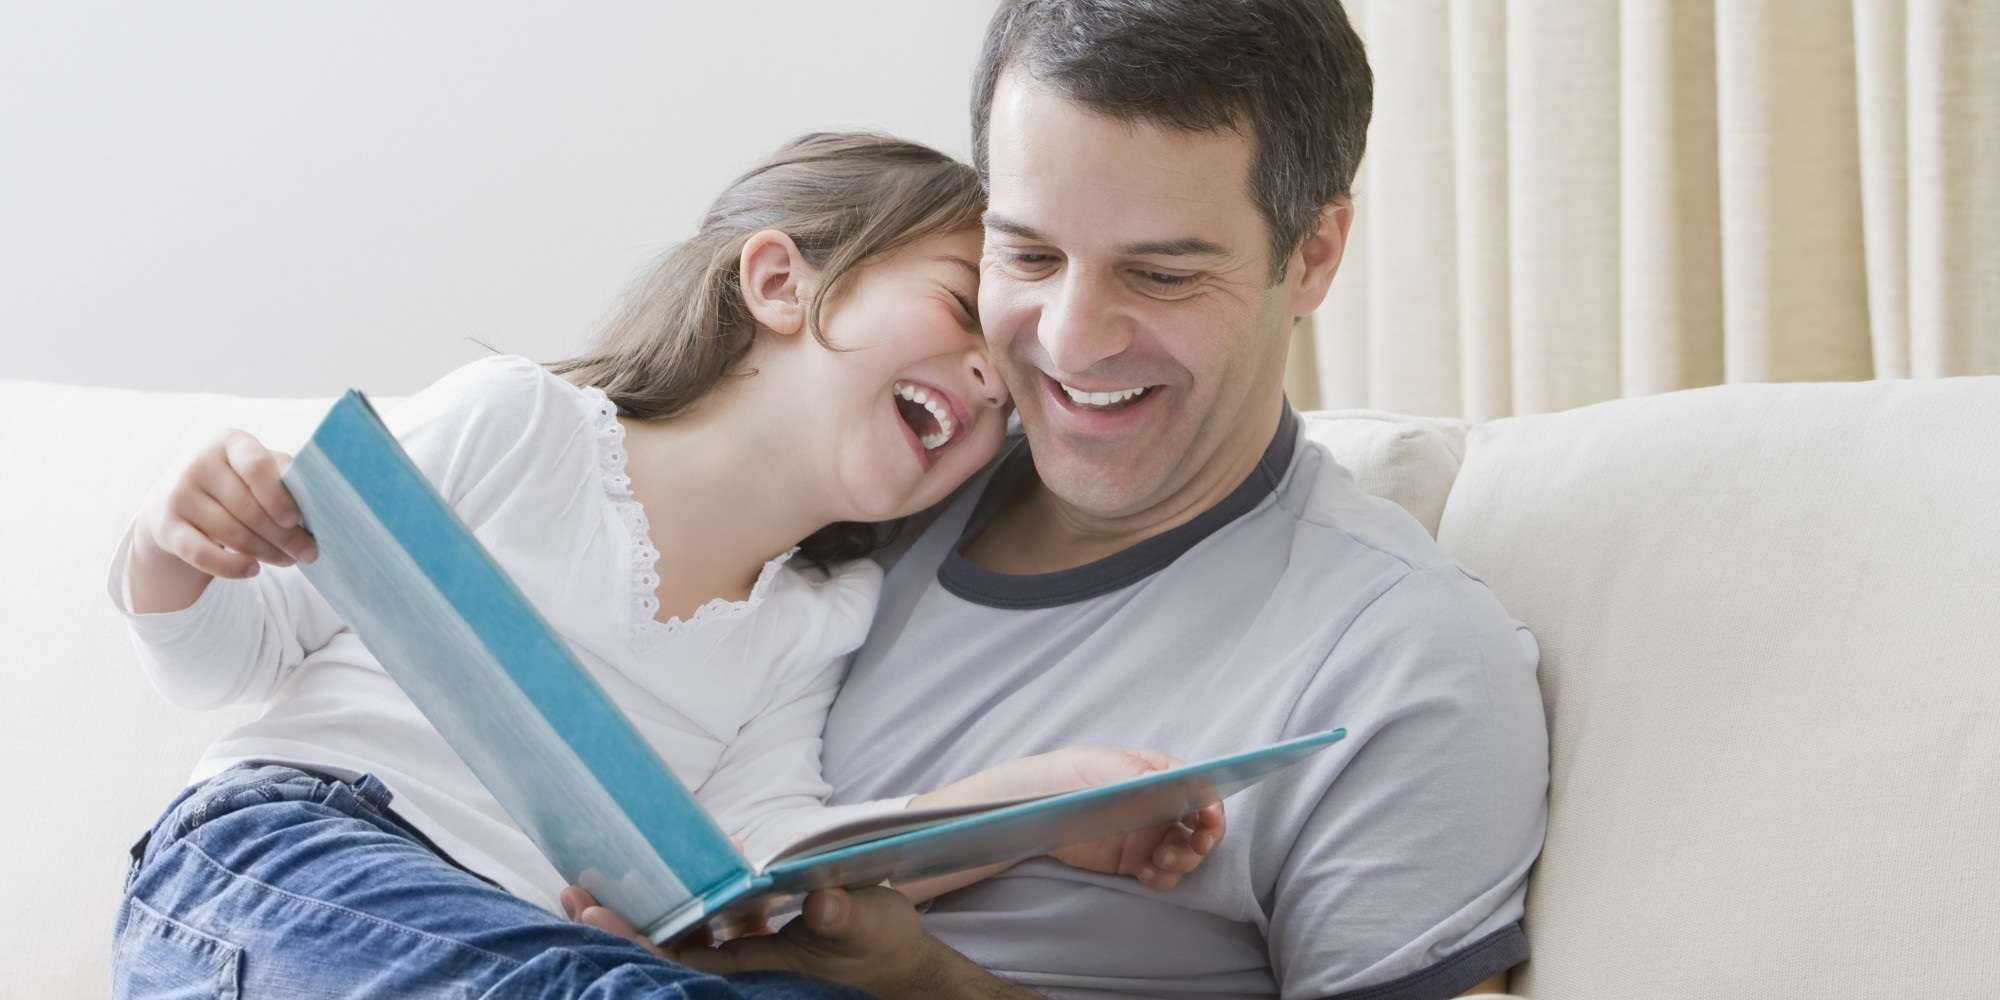 Resultado de imagem para parent reading to child